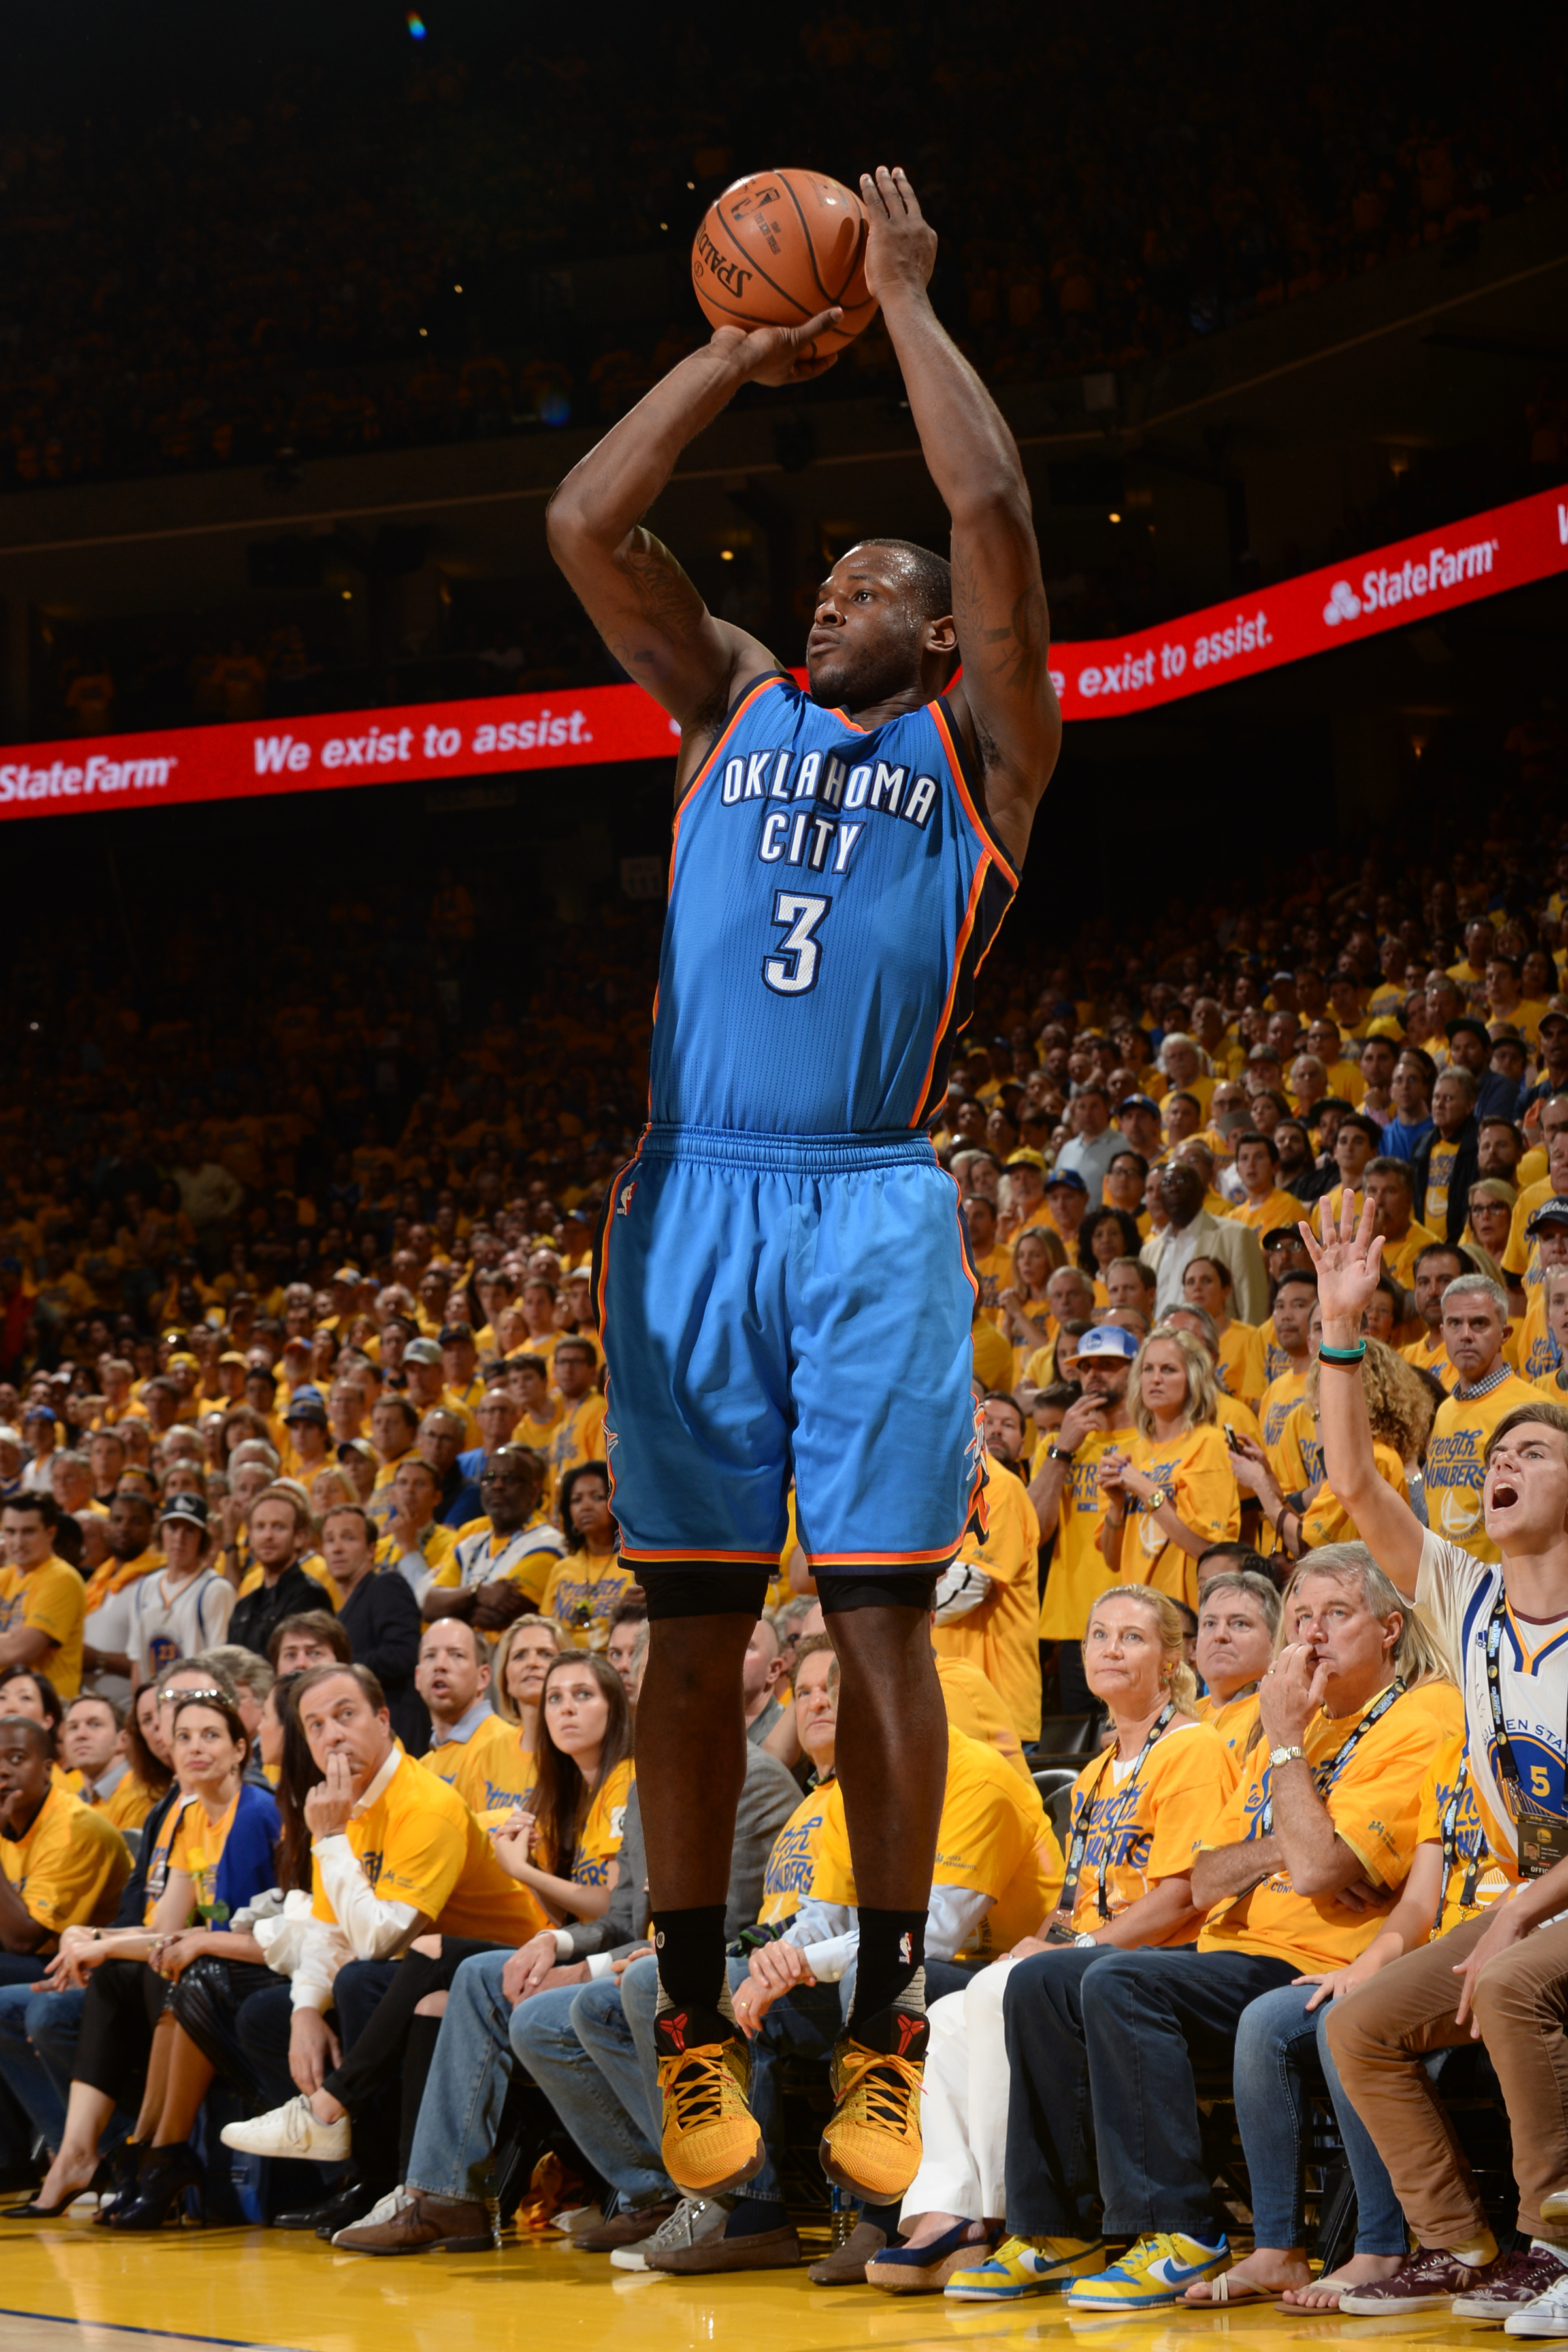 OAKLAND, CA - MAY 30:  Dion Waiters #3 of the Oklahoma City Thunder shoots the ball against the Golden State Warriors during Game Seven of the Western Conference Finals during the 2016 NBA Playoffs on May 30, 2016 at ORACLE Arena in Oakland, California. (